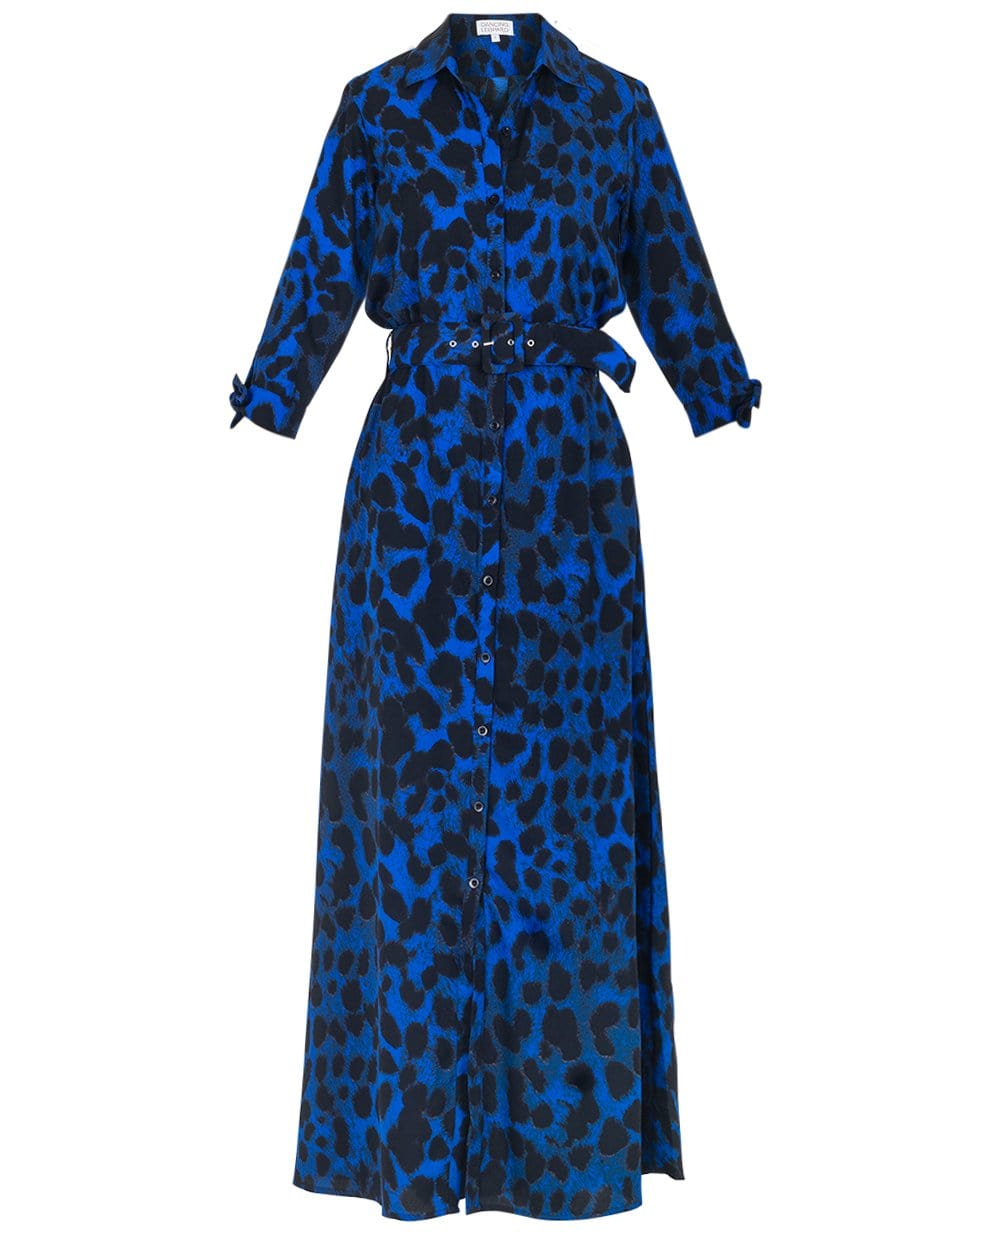 Dove Dress in Blue Leopard Print on white background